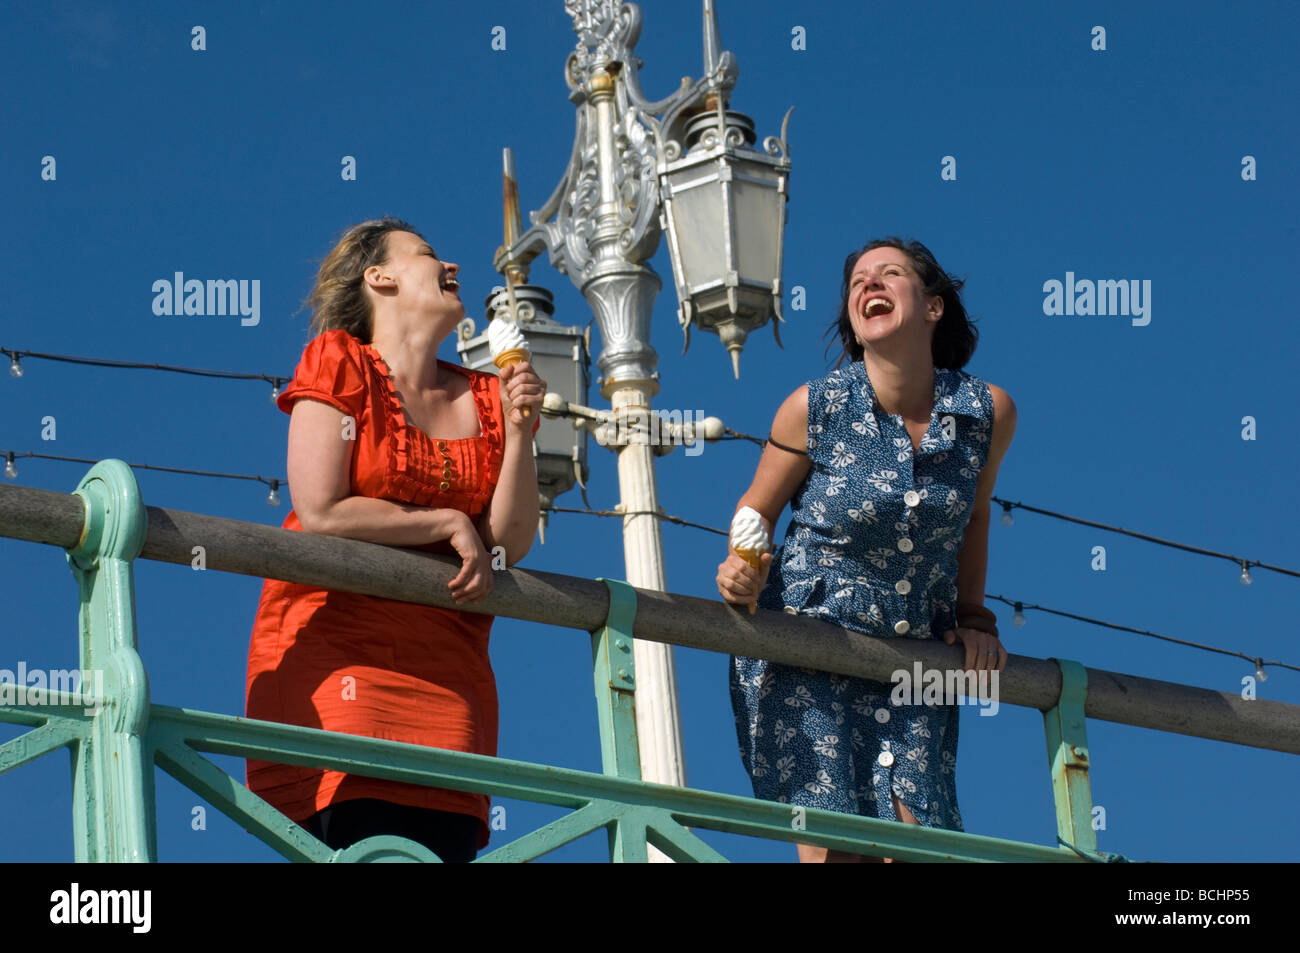 Two girls on the Prom at Brighton with icecream, laughing, having fun. - Stock Image